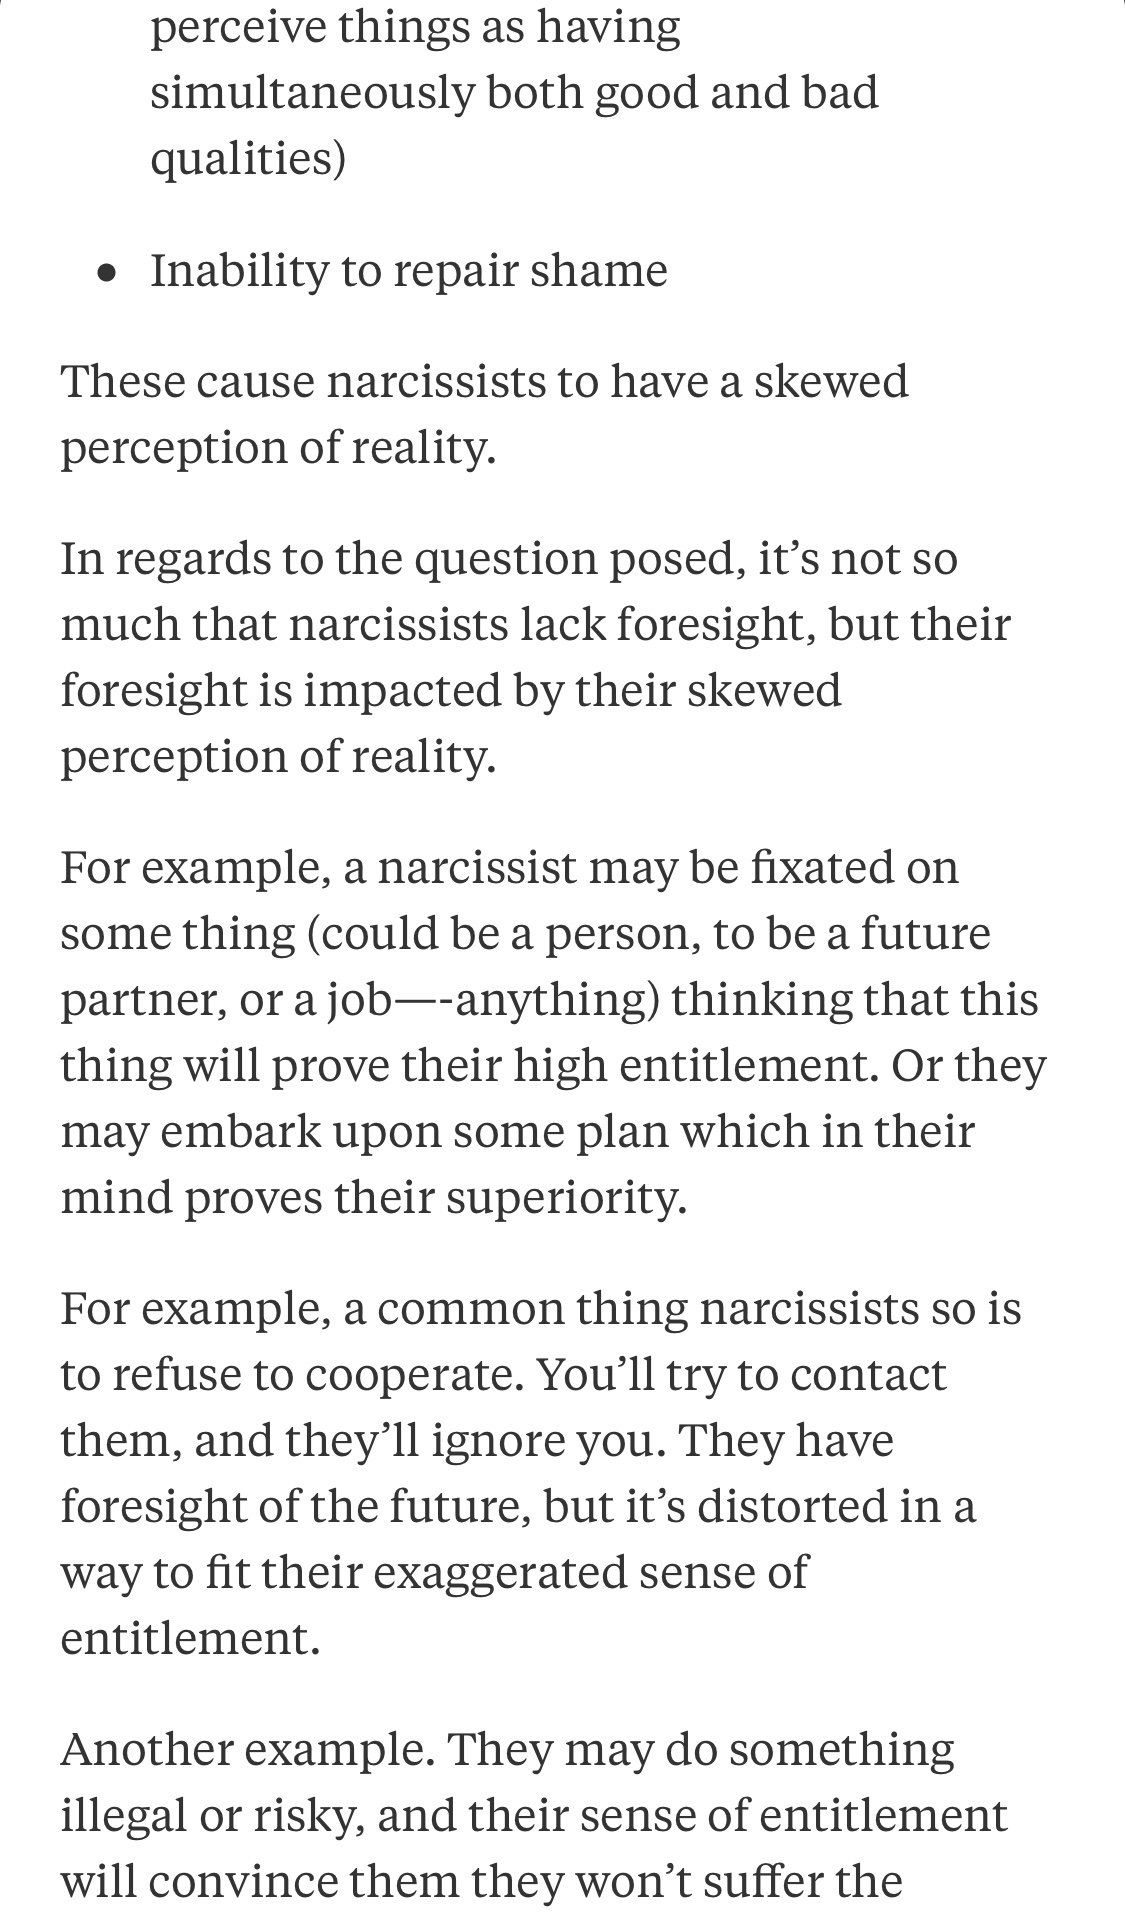 The short sighted nature of narcissistic behavior is